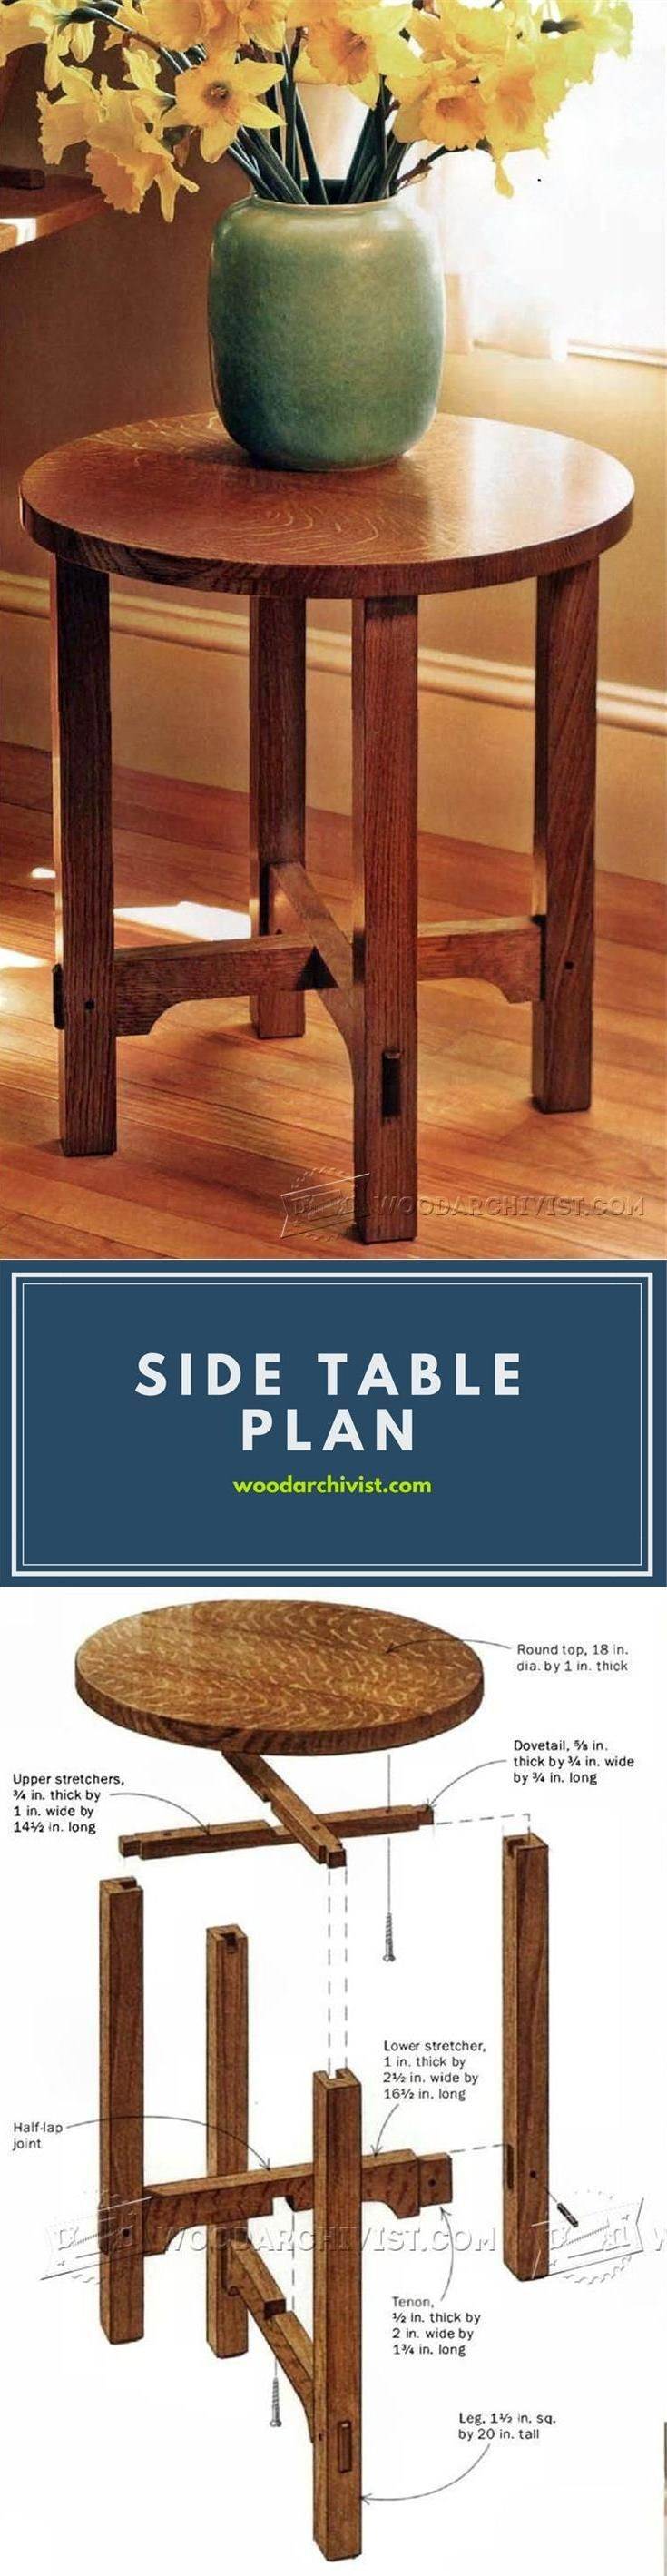 Art and Crafts Side Table Plans - Furniture Plans and Projects | WoodArchivist.com